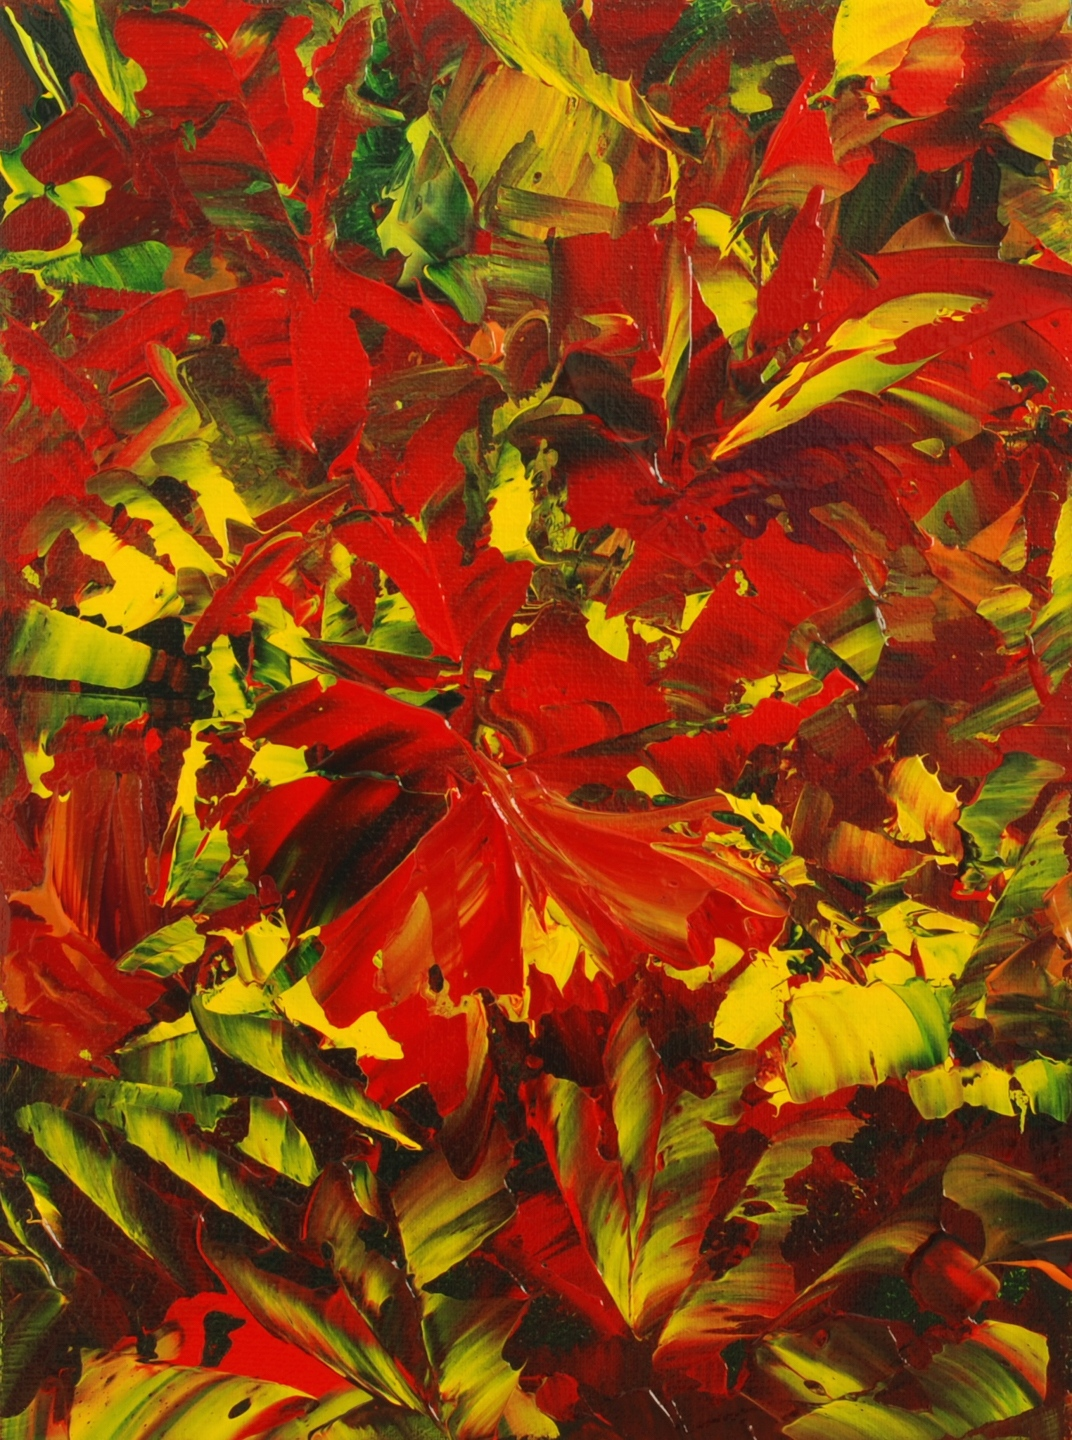 290 - Autums leaves